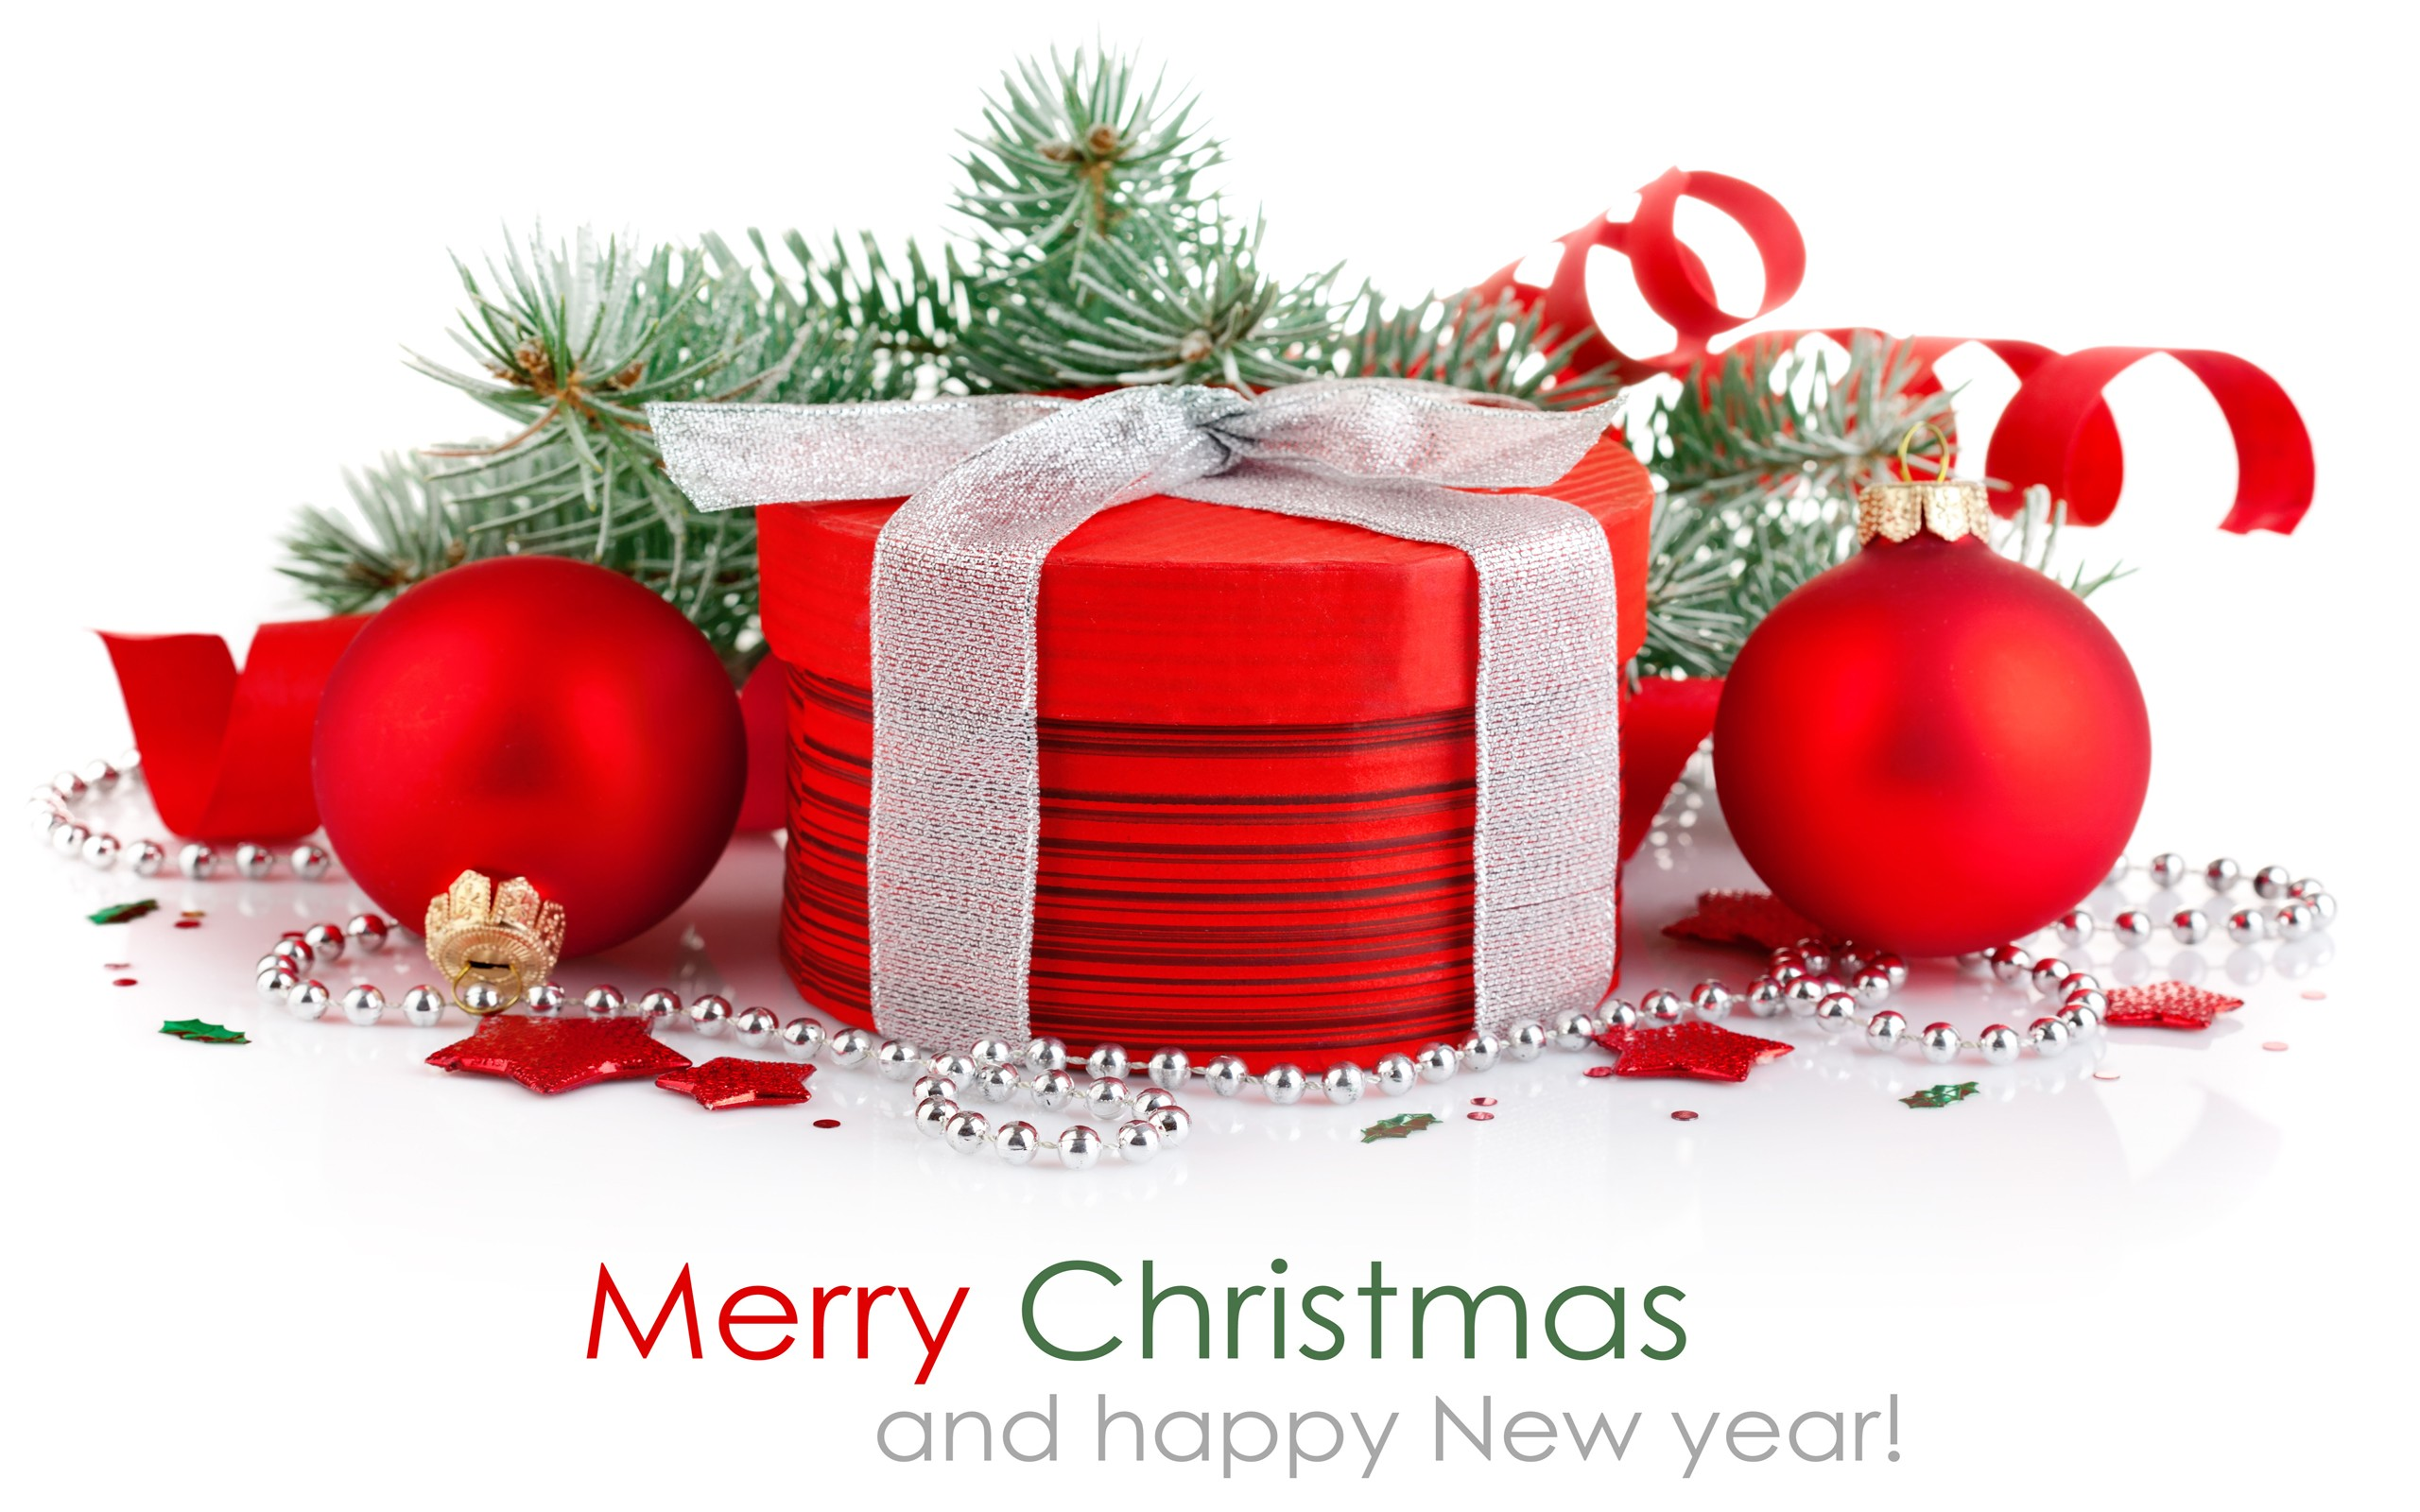 Best merry christmas and happy new year images